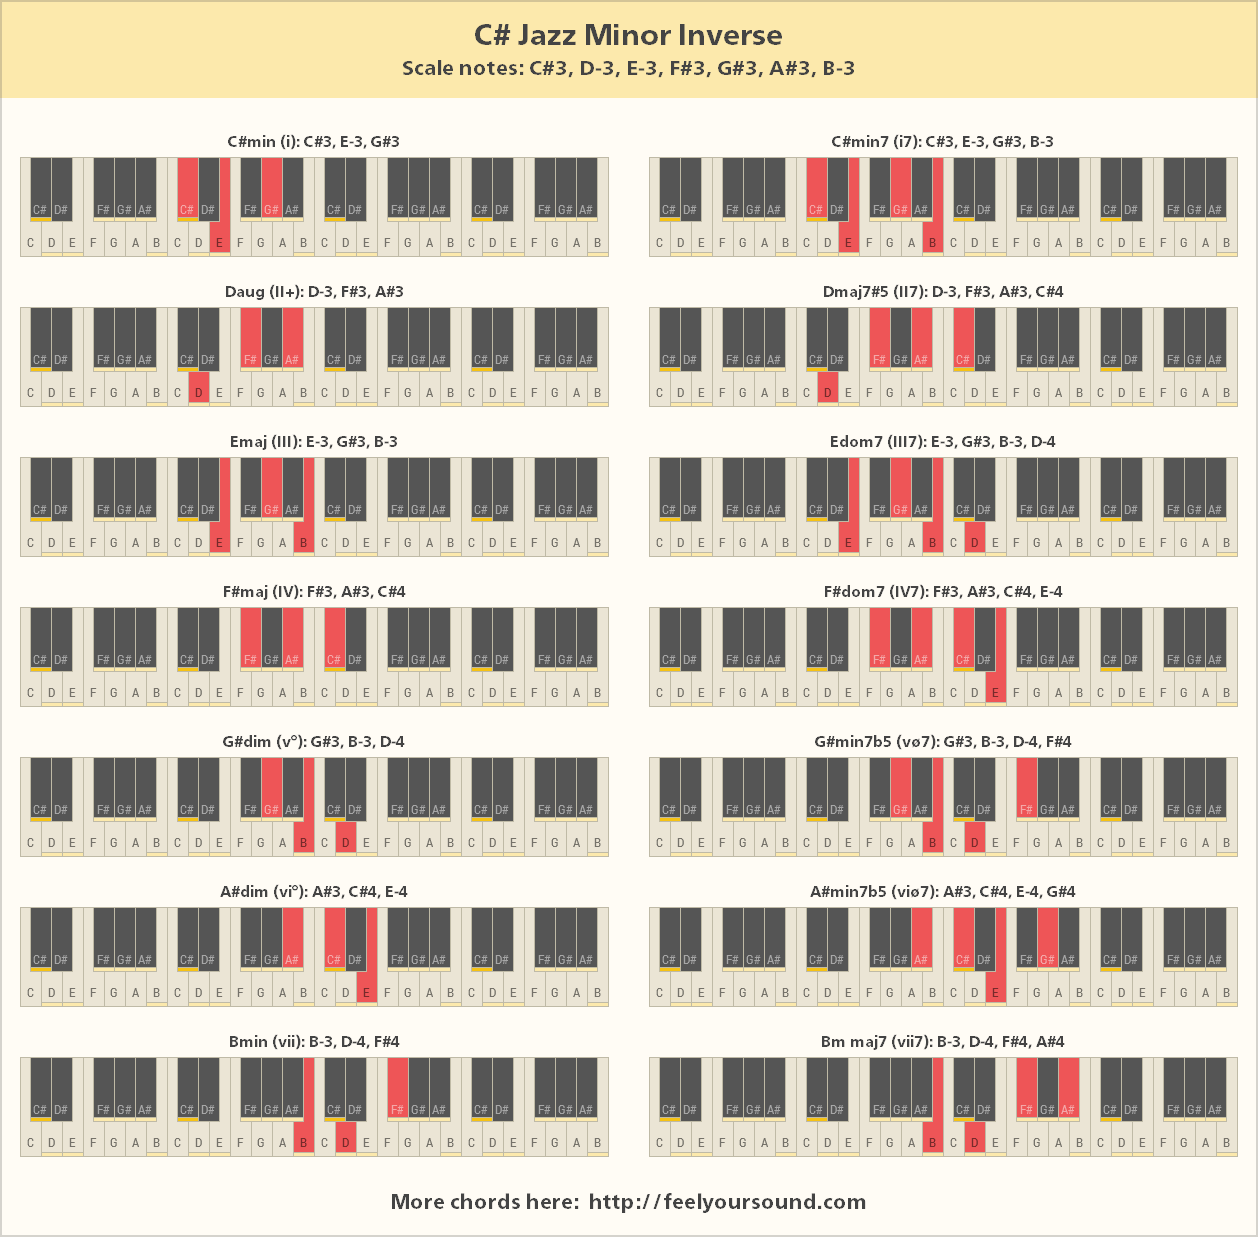 Chords and scale notes of C Jazz Minor Inverse